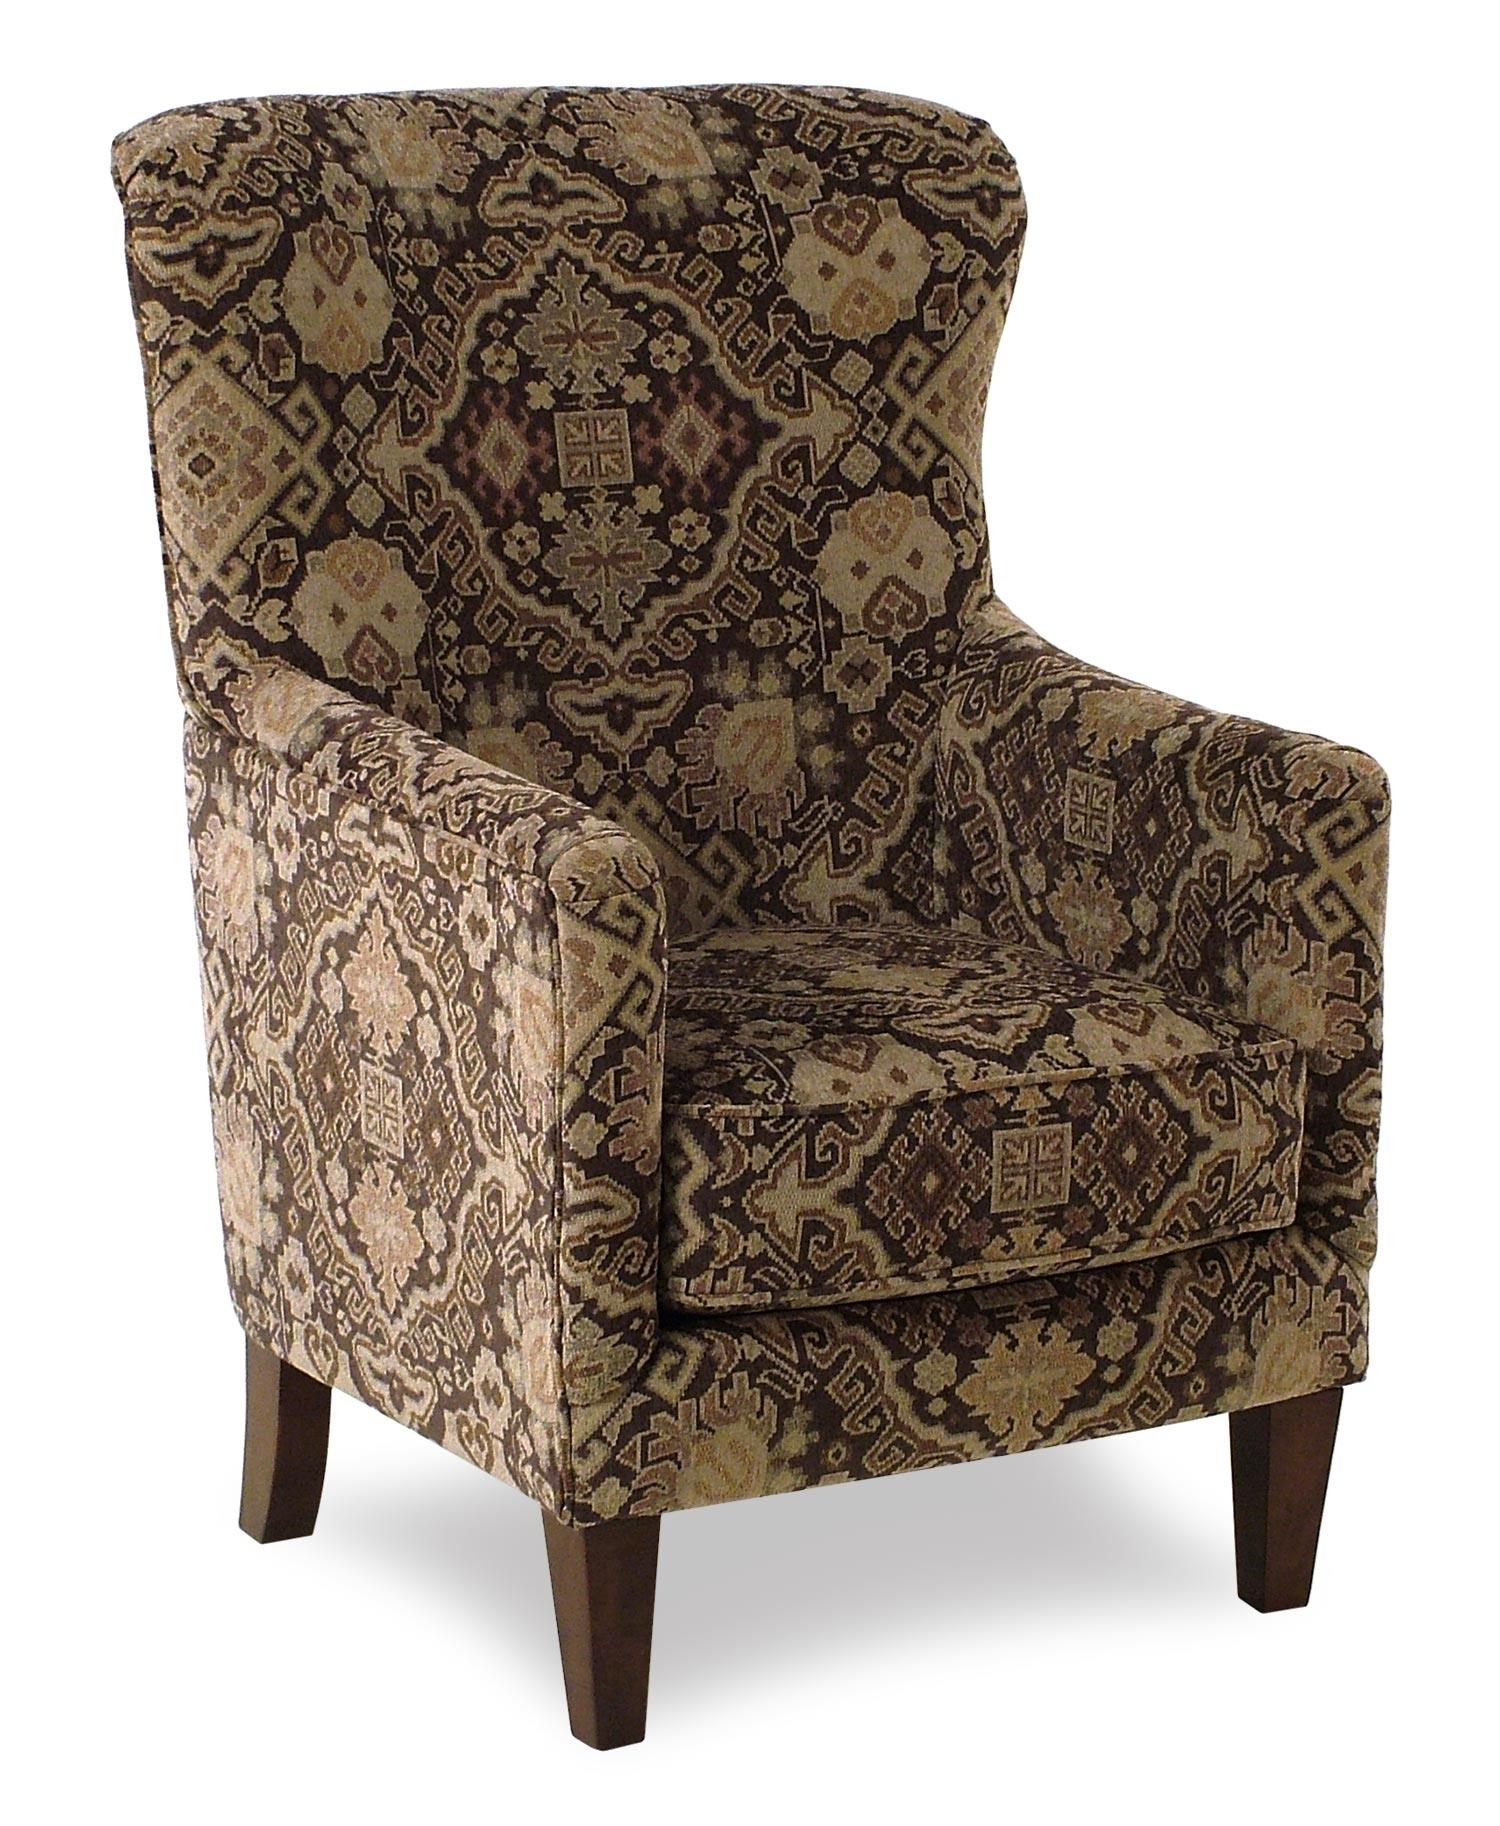 Decor-Rest Maxwell Contemporary Wing Back Chair - Item Number: 2379-SHAWEXPRESSO